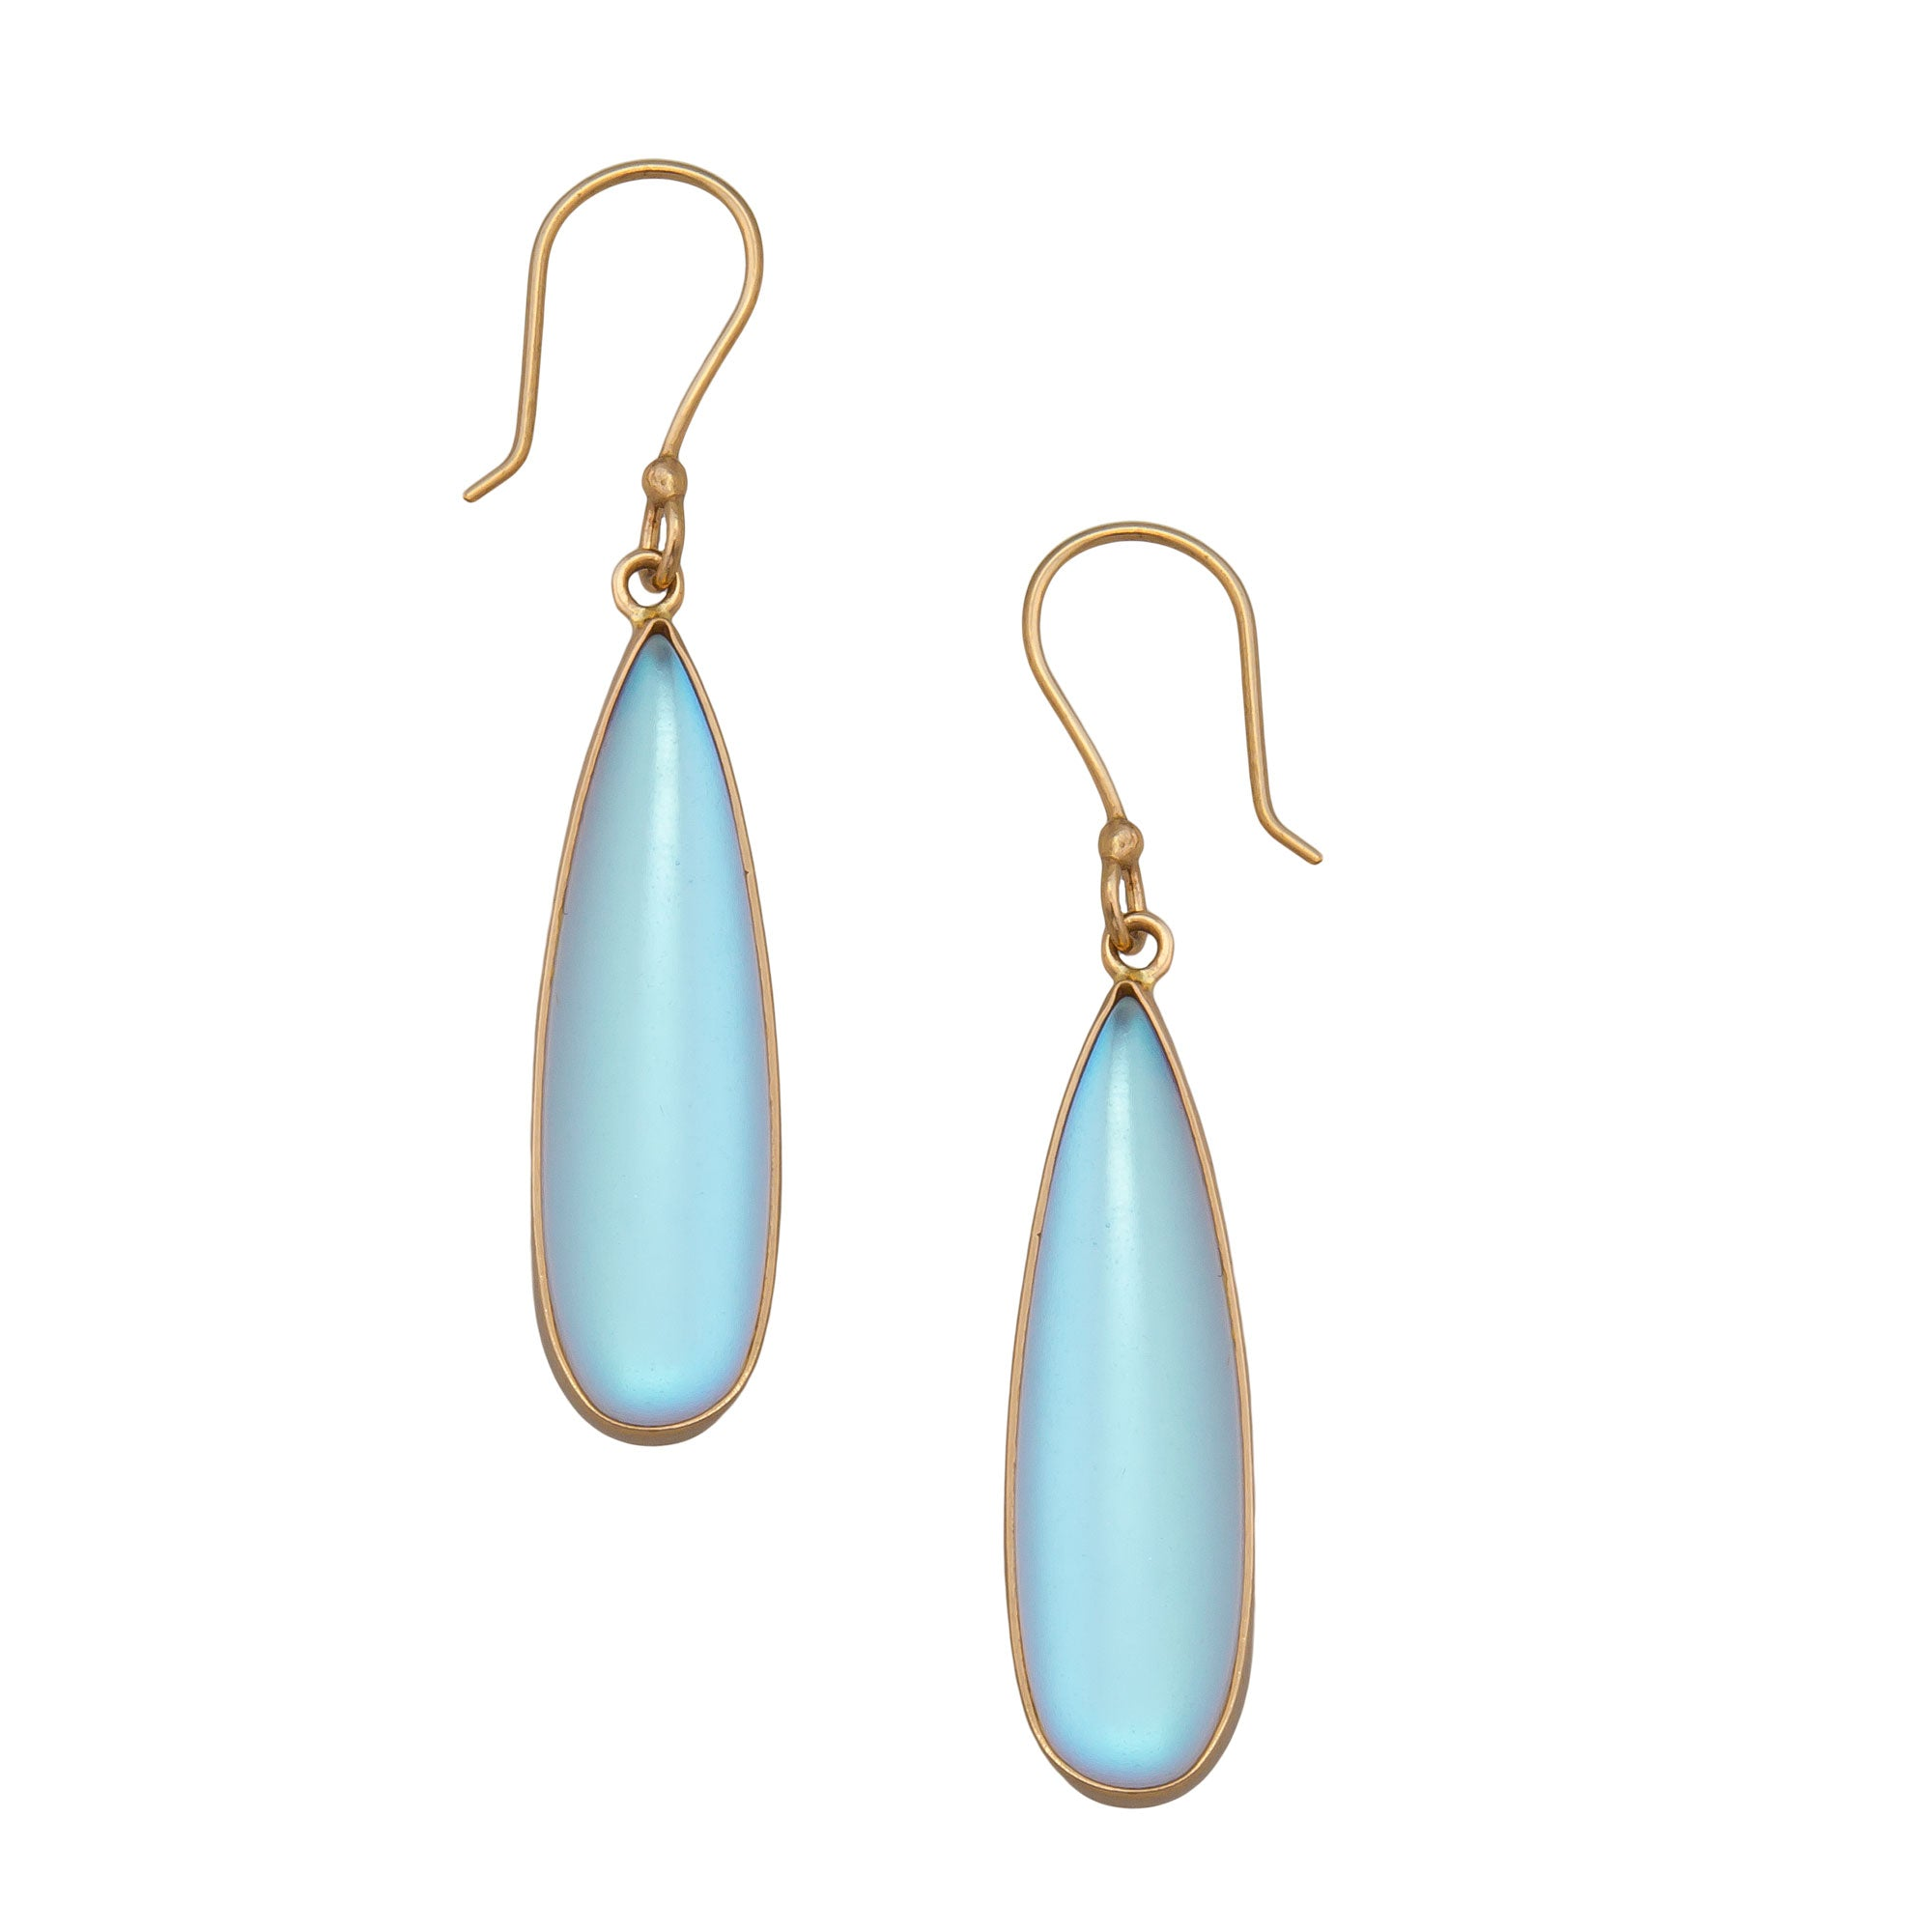 Alchemia Luminite Teardrop Earrings